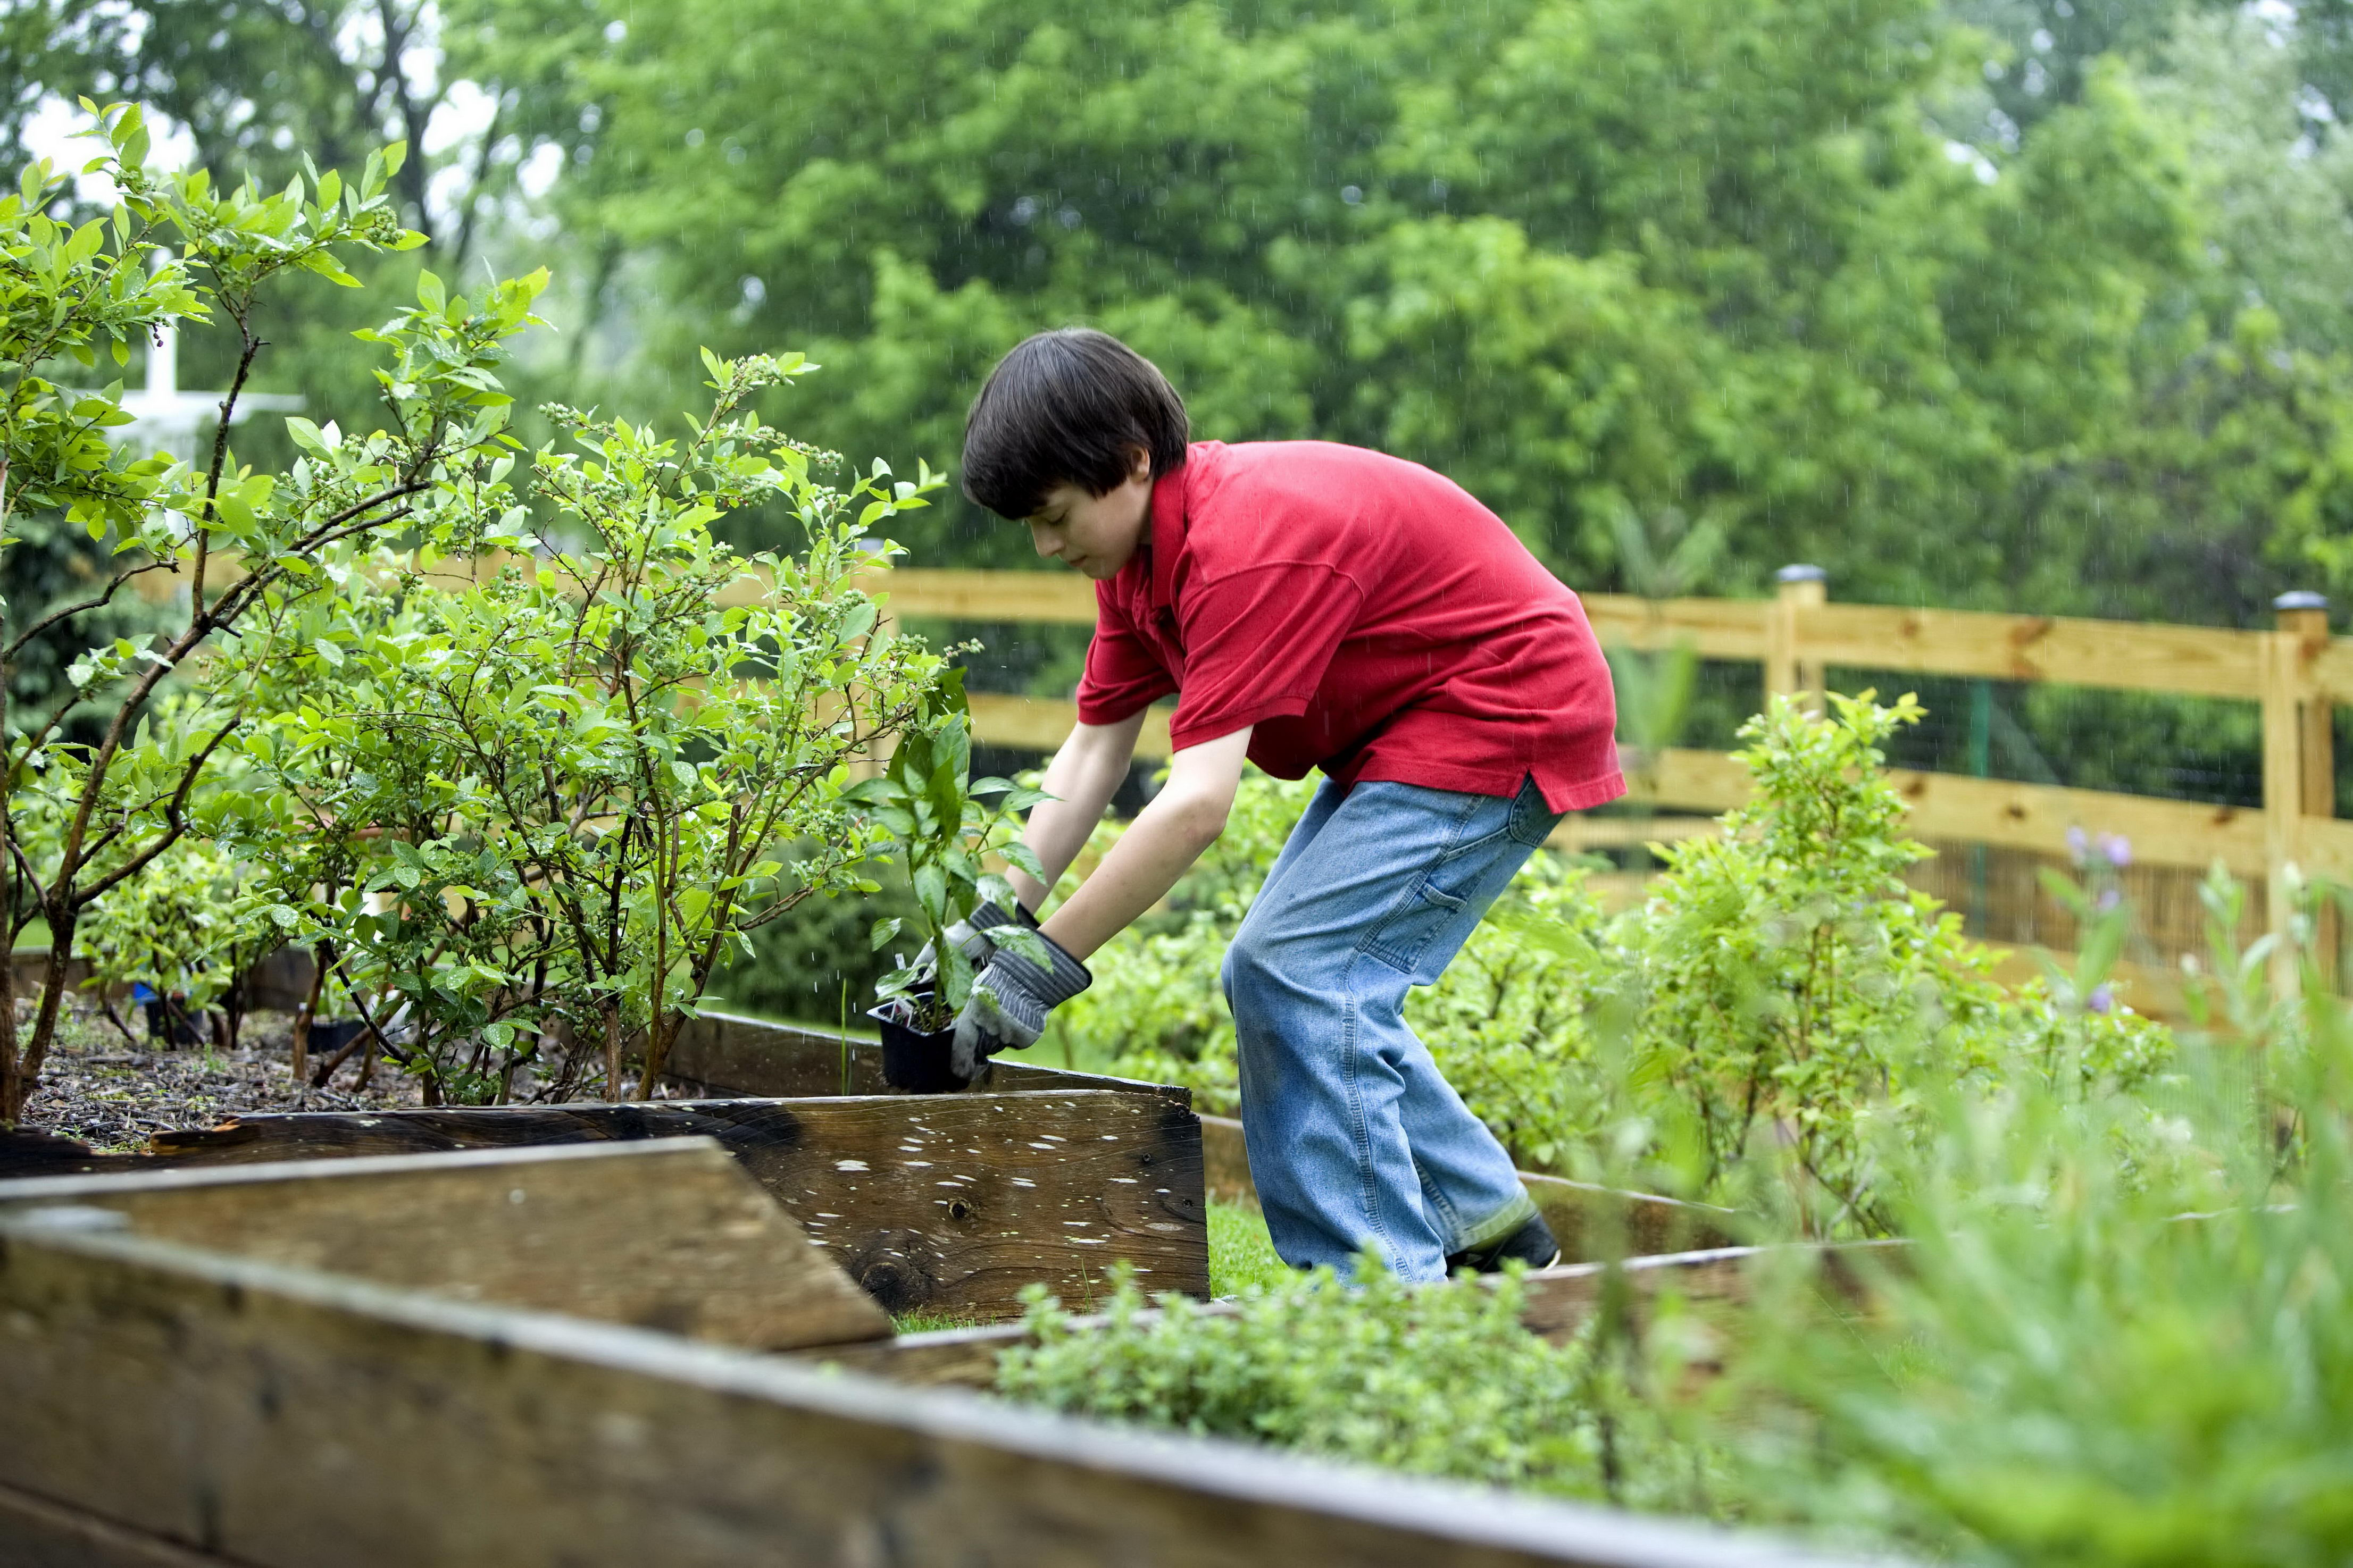 Free Picture: Boy, Planting, Vegetables, Garden